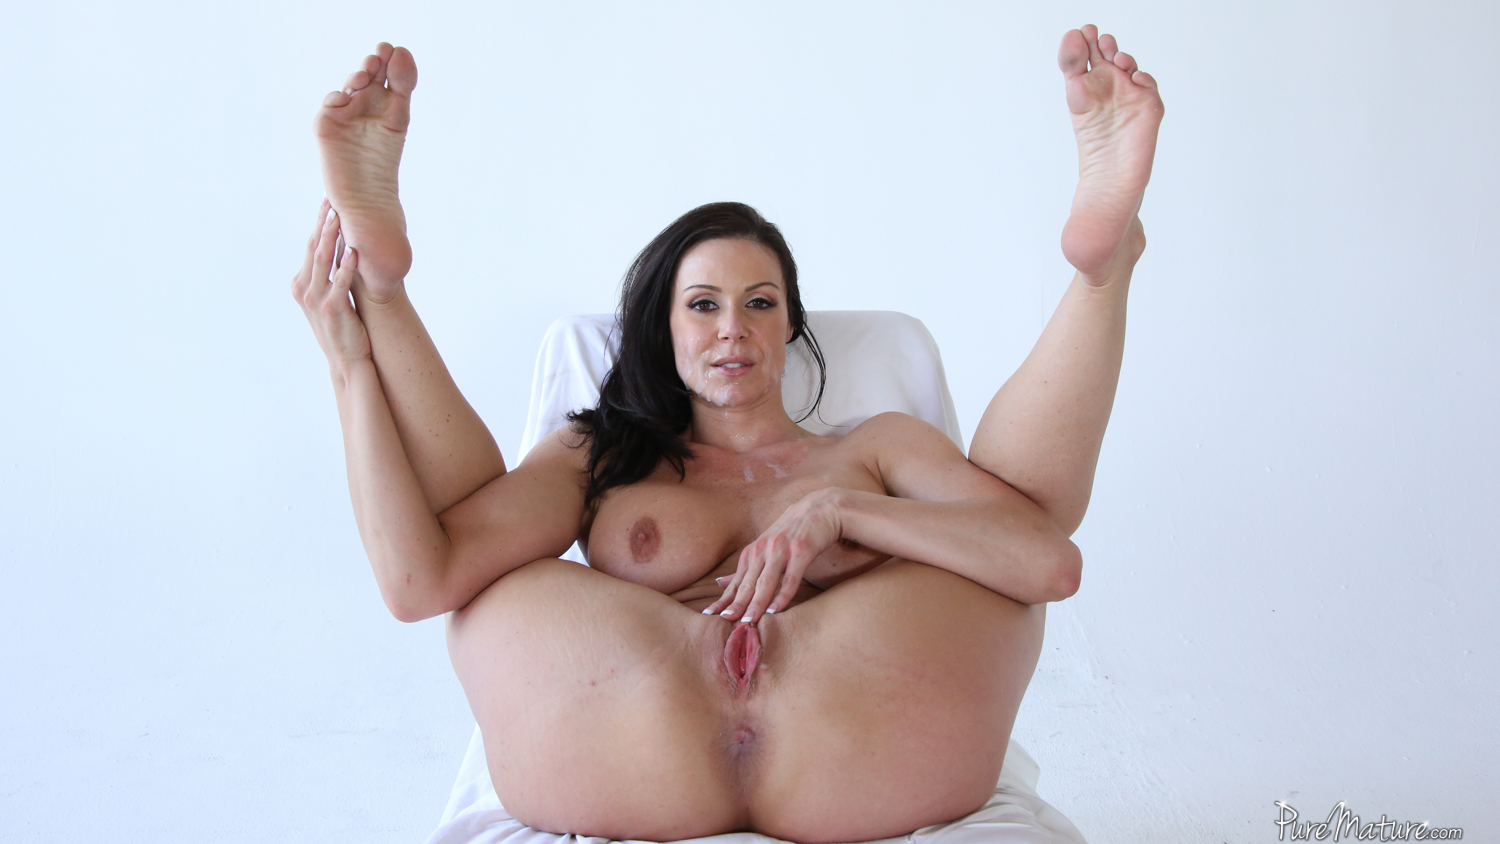 kendra lust videos